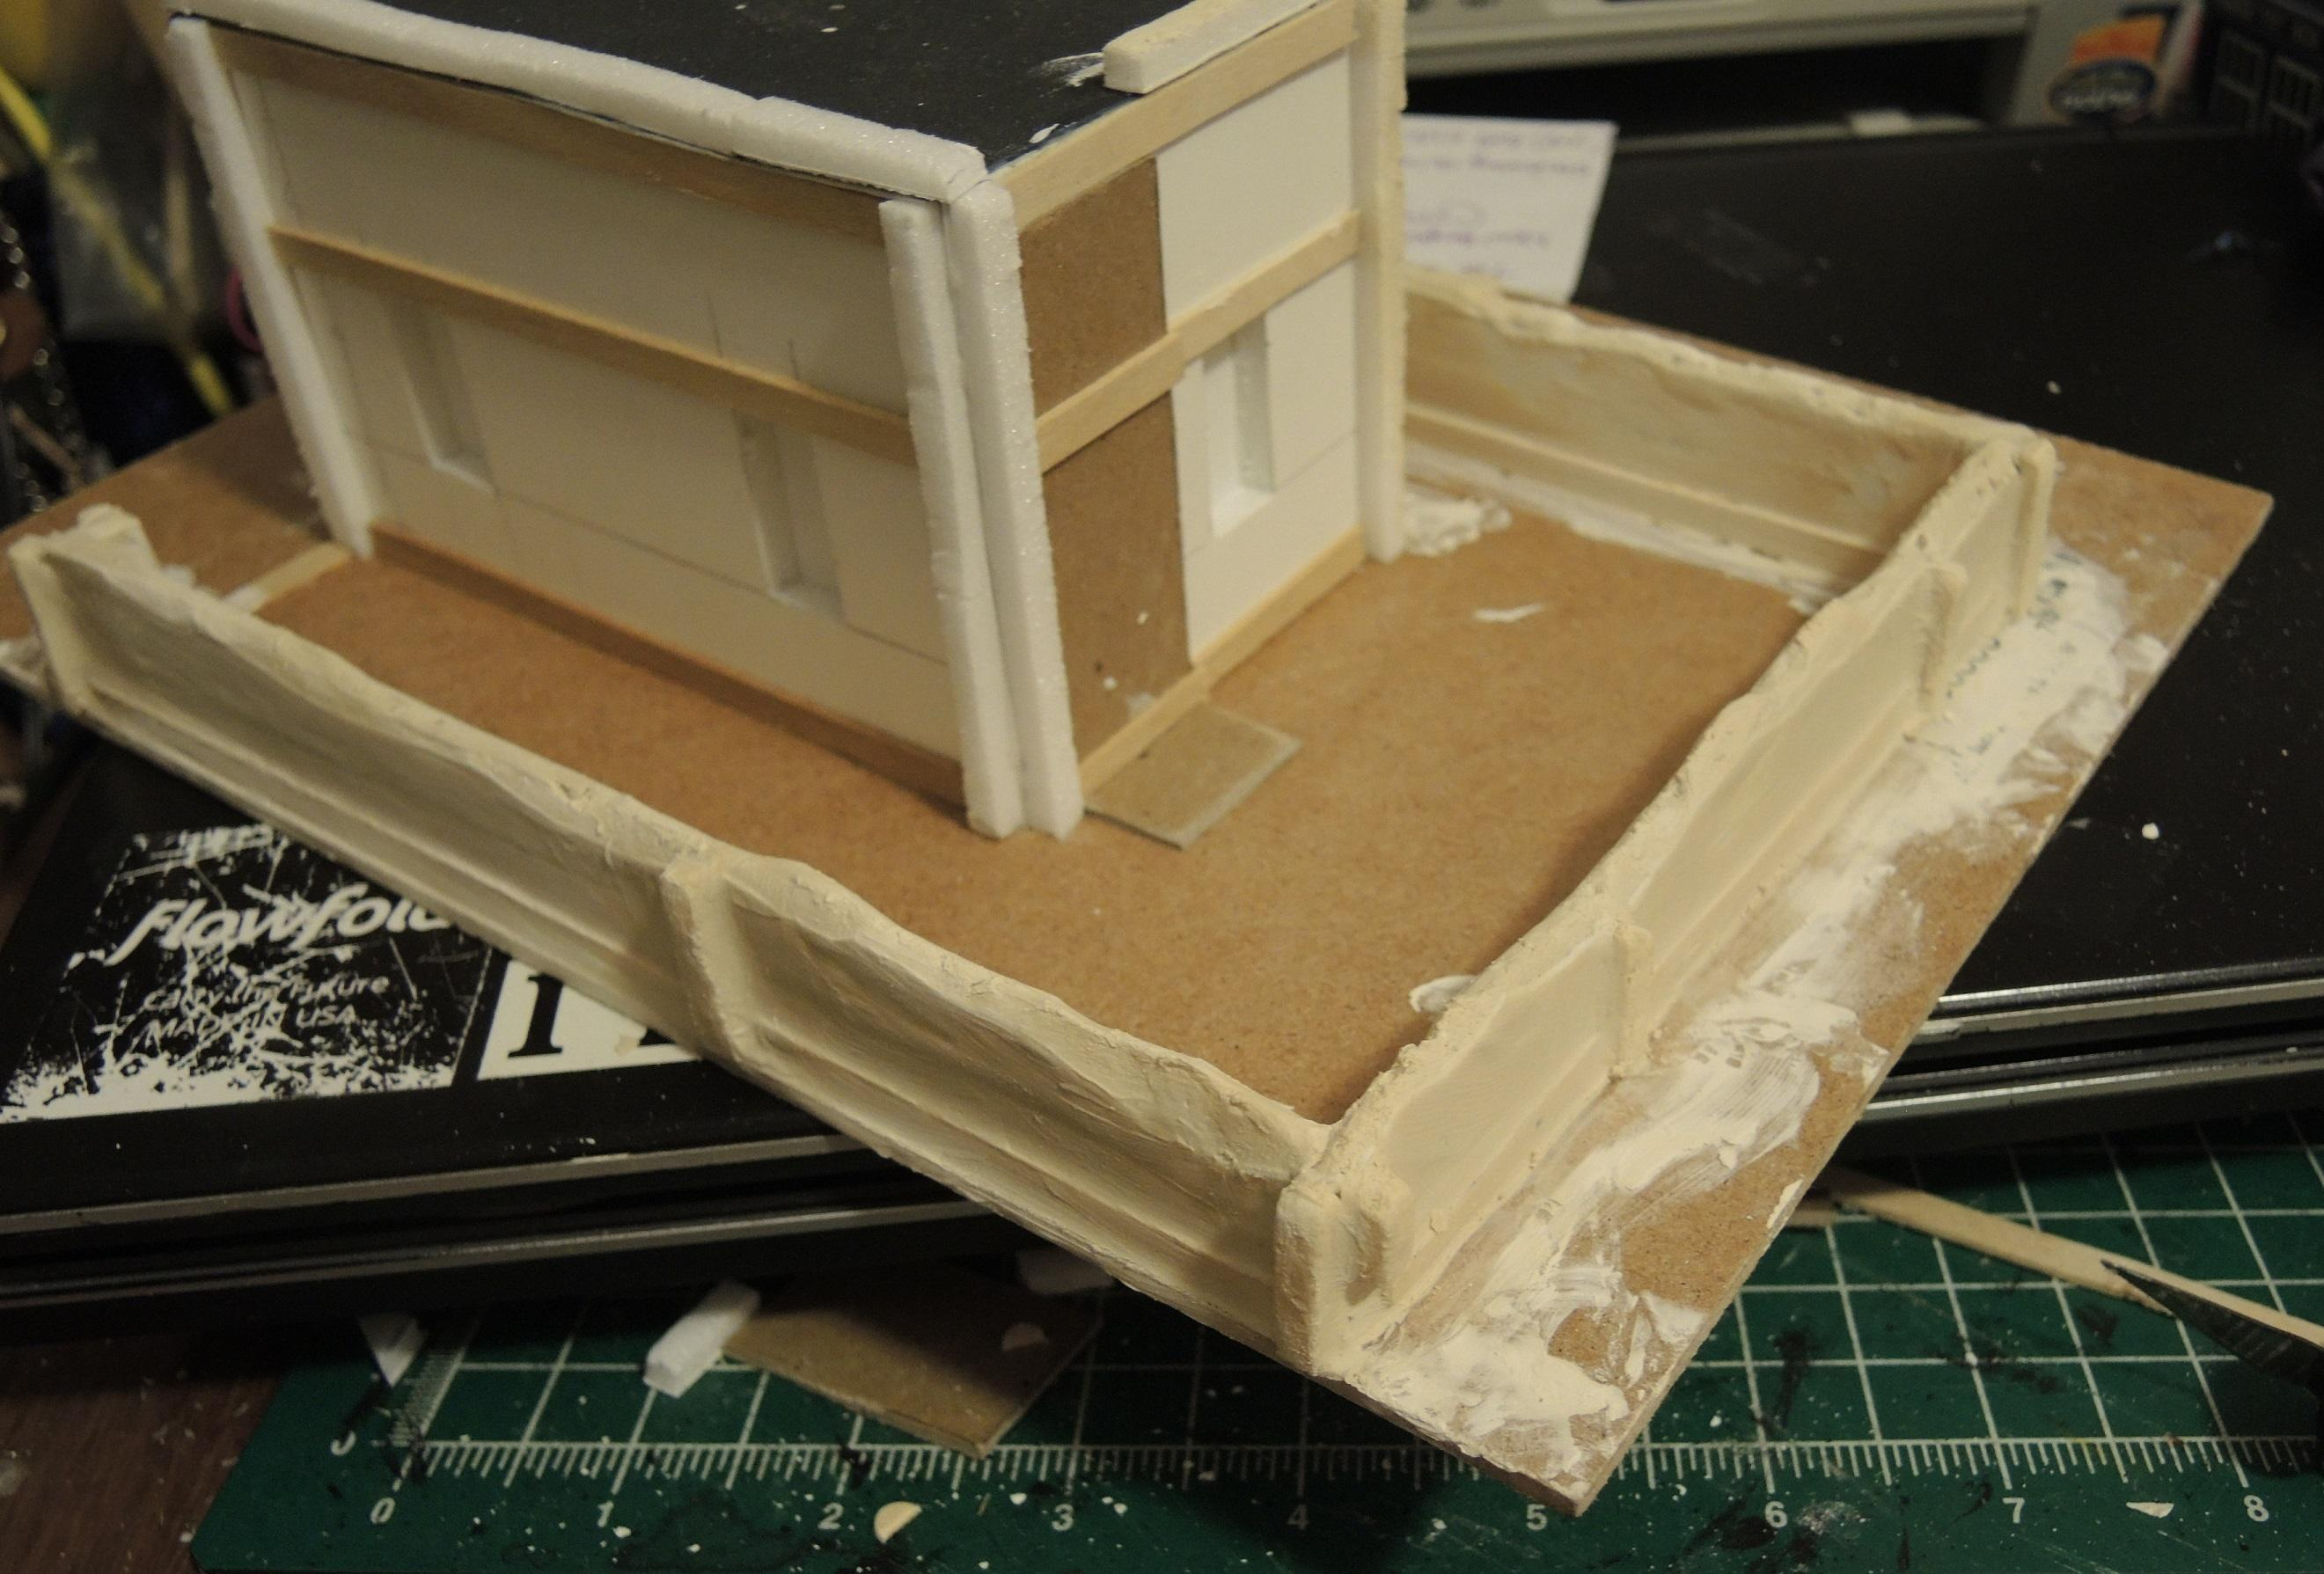 Commission, Commissioned, Game Table, Infinity, Residential, Ruins, Scratch Build, Terrain, Waaazag, Warhammer 40,000, Work In Progress